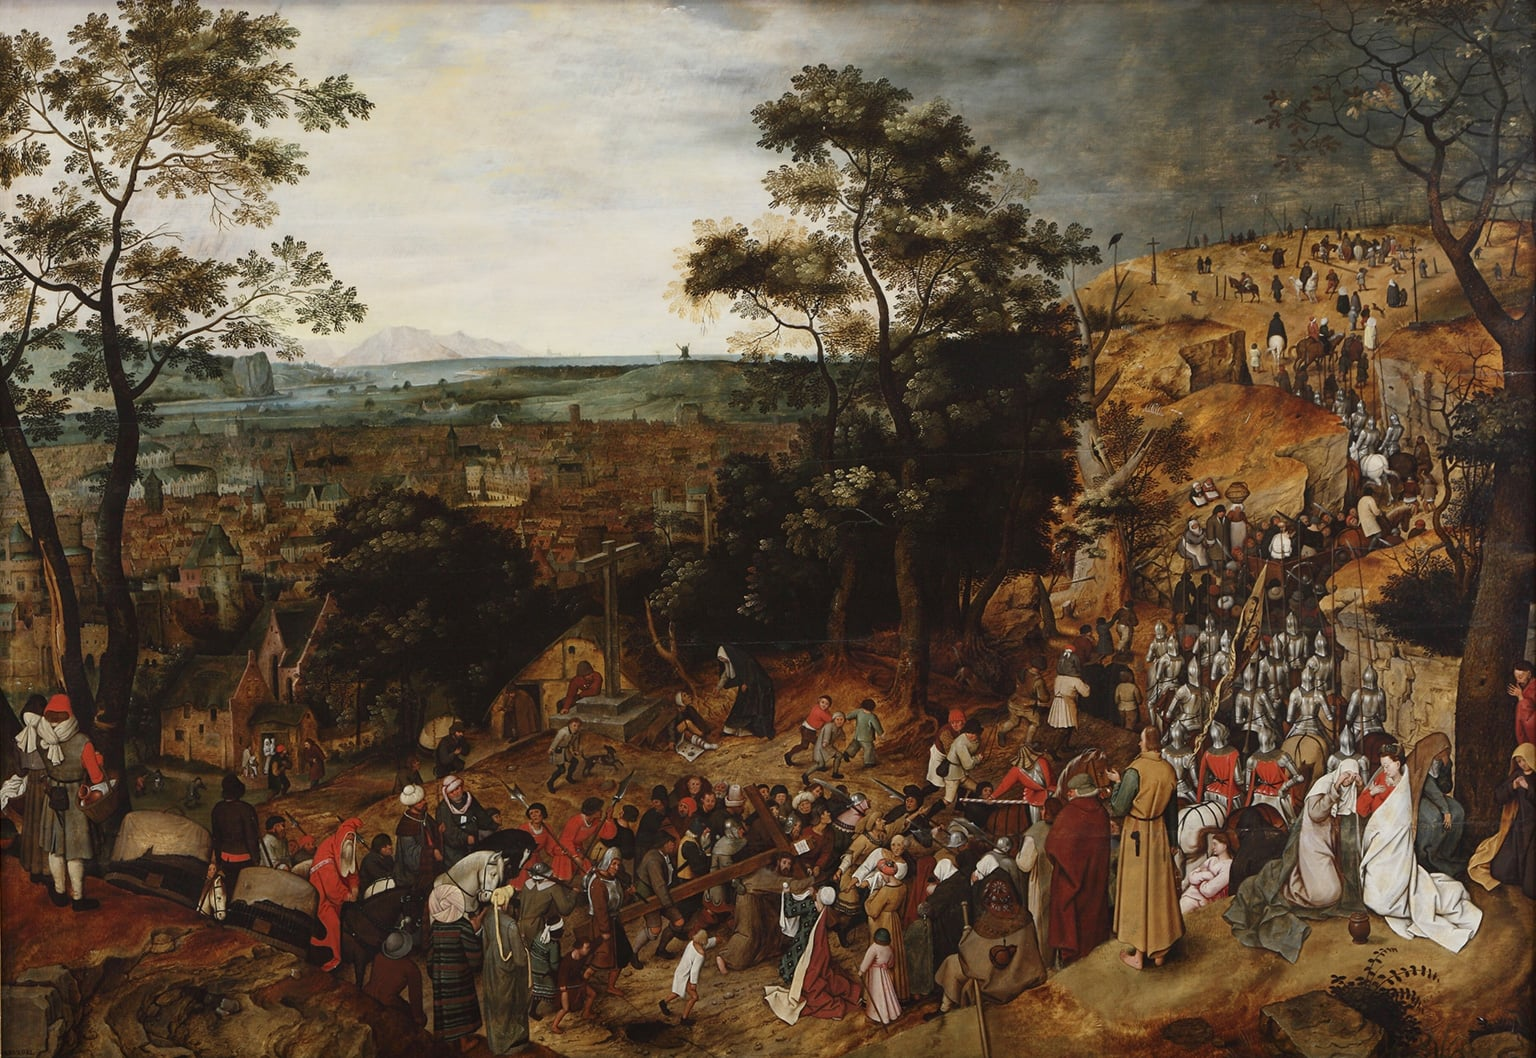 3. Pieter Brueghel the Younger, The Procession to Calvary, 1602 - Nostell Priory, West Yorkshire